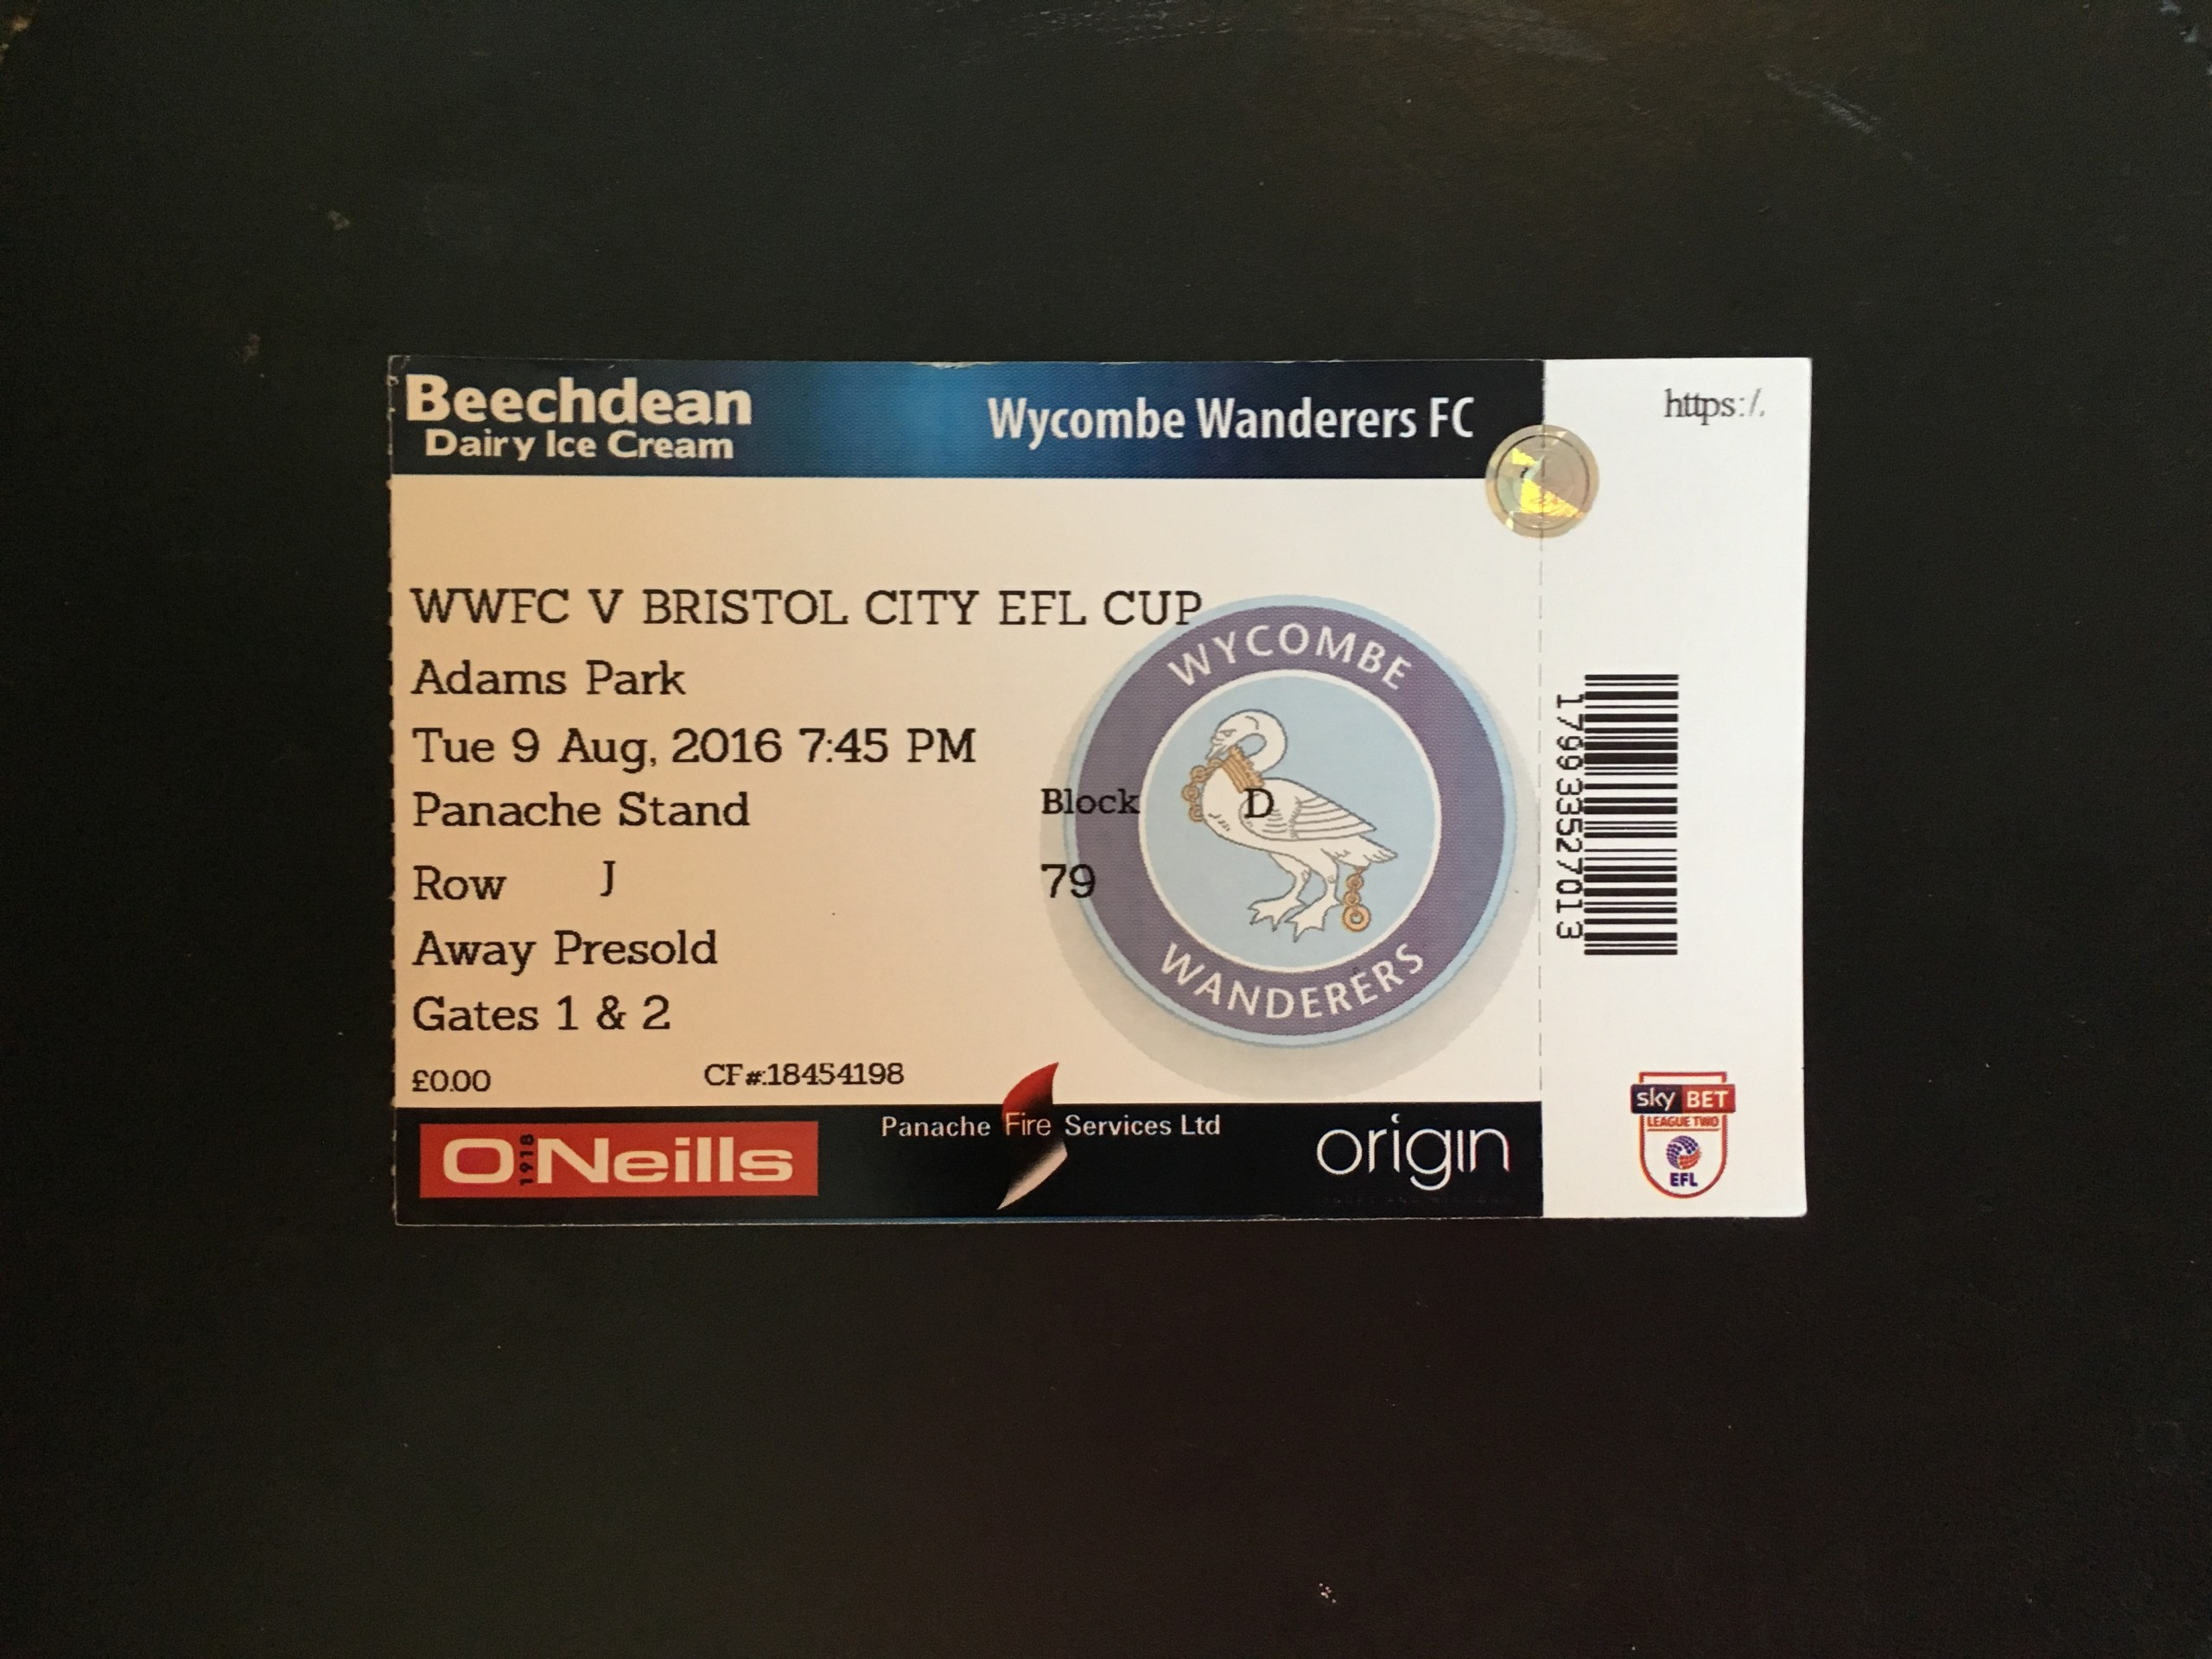 Wycombe Wanderers v Bristol City 09-08-2016 Ticket